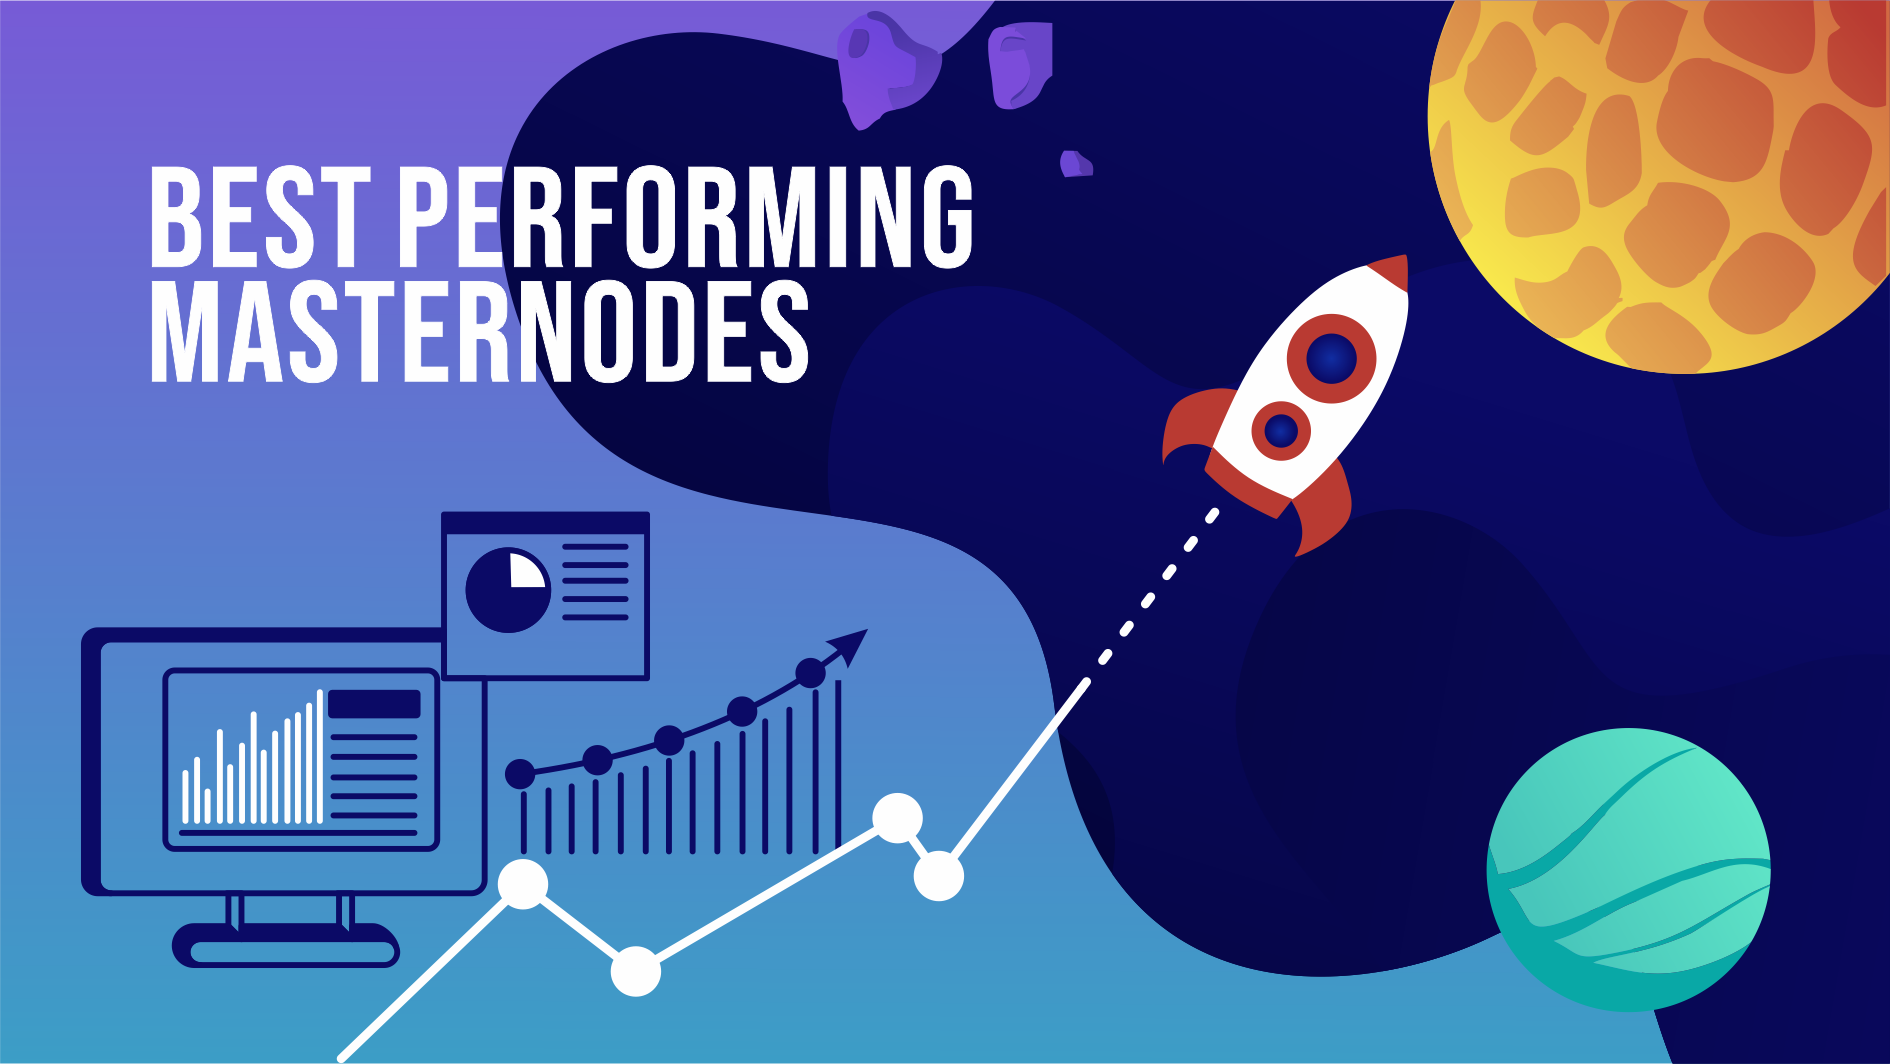 Best Performing Masternodes #week45